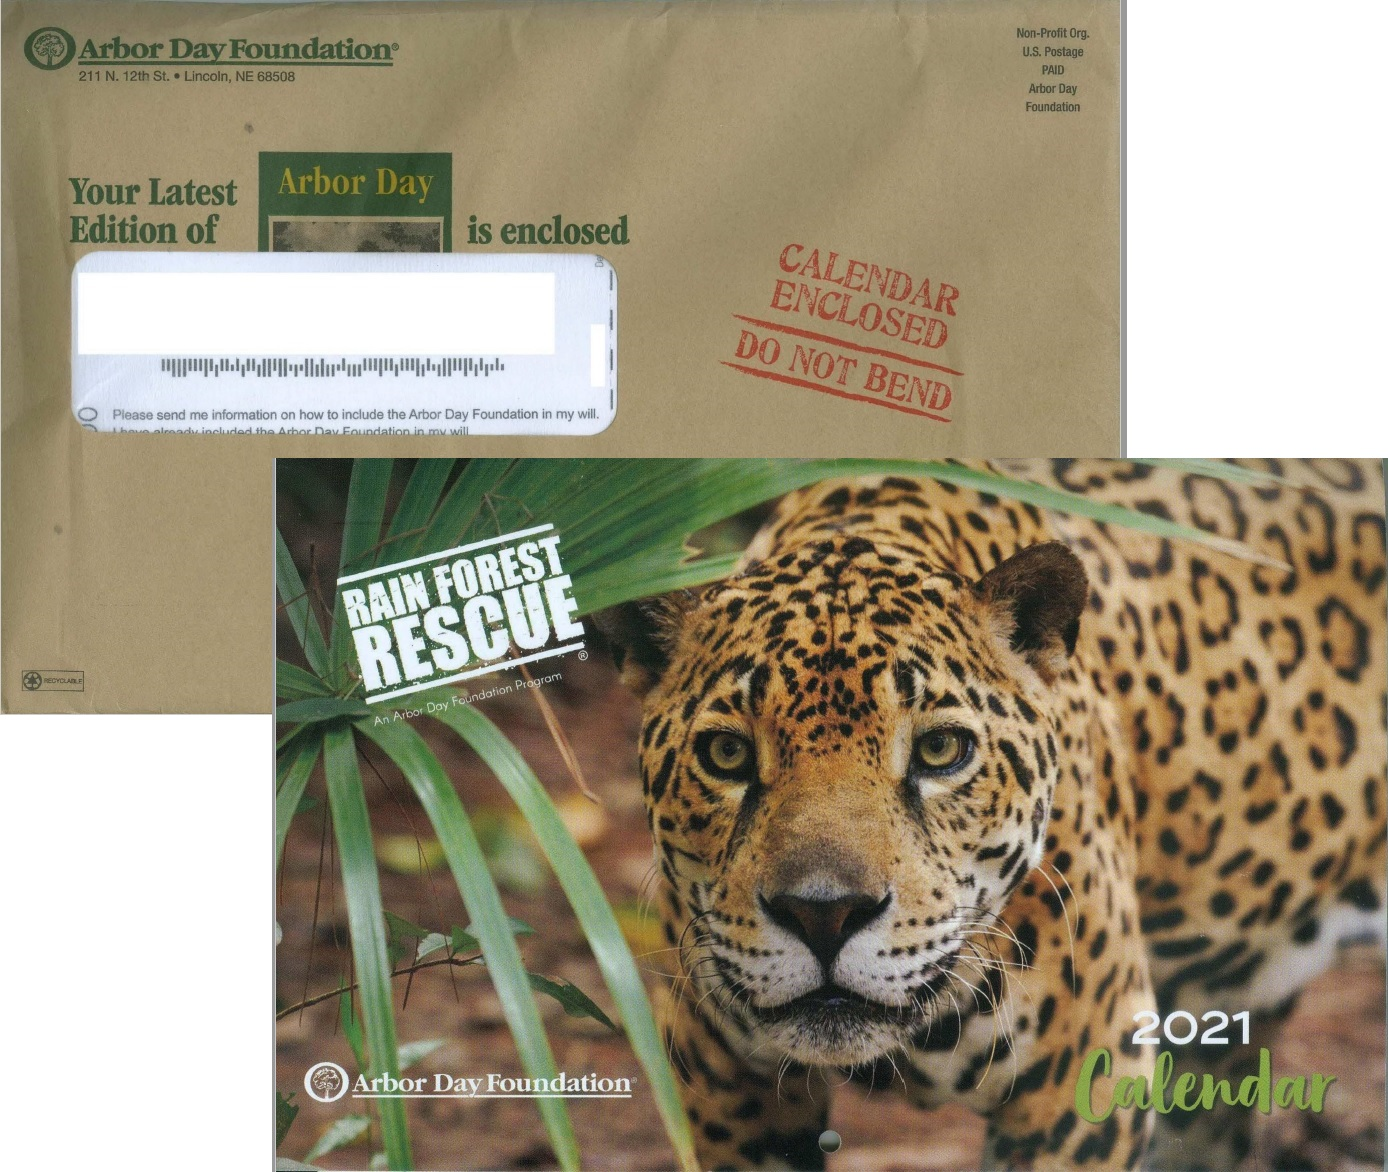 Arbor Day Foundation direct mail